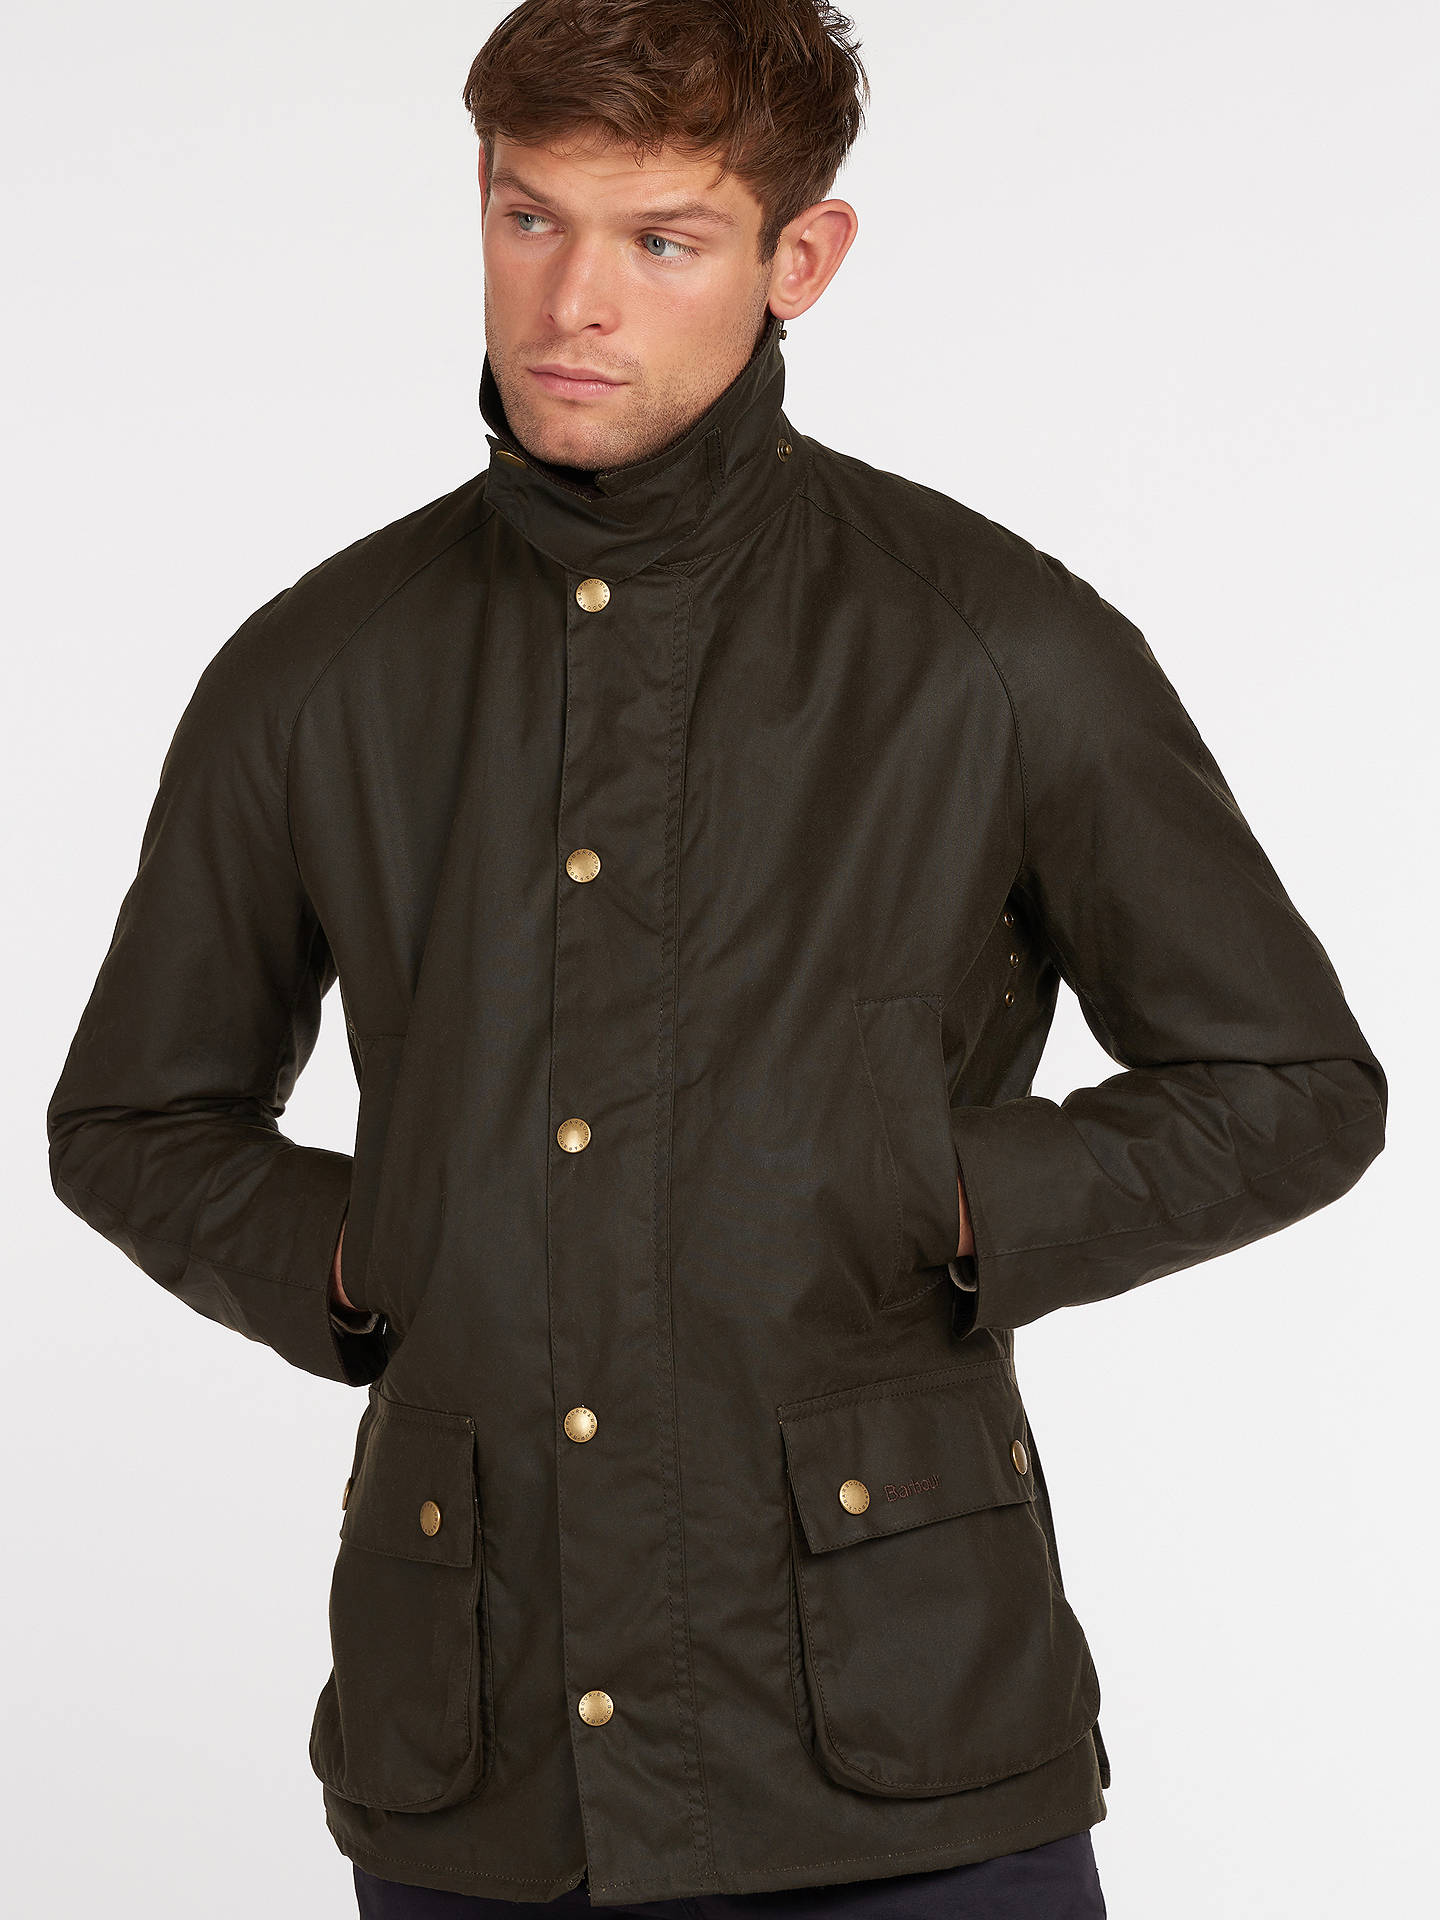 Barbour Lifestyle Ashby Waxed Cotton Field Jacket Olive At John